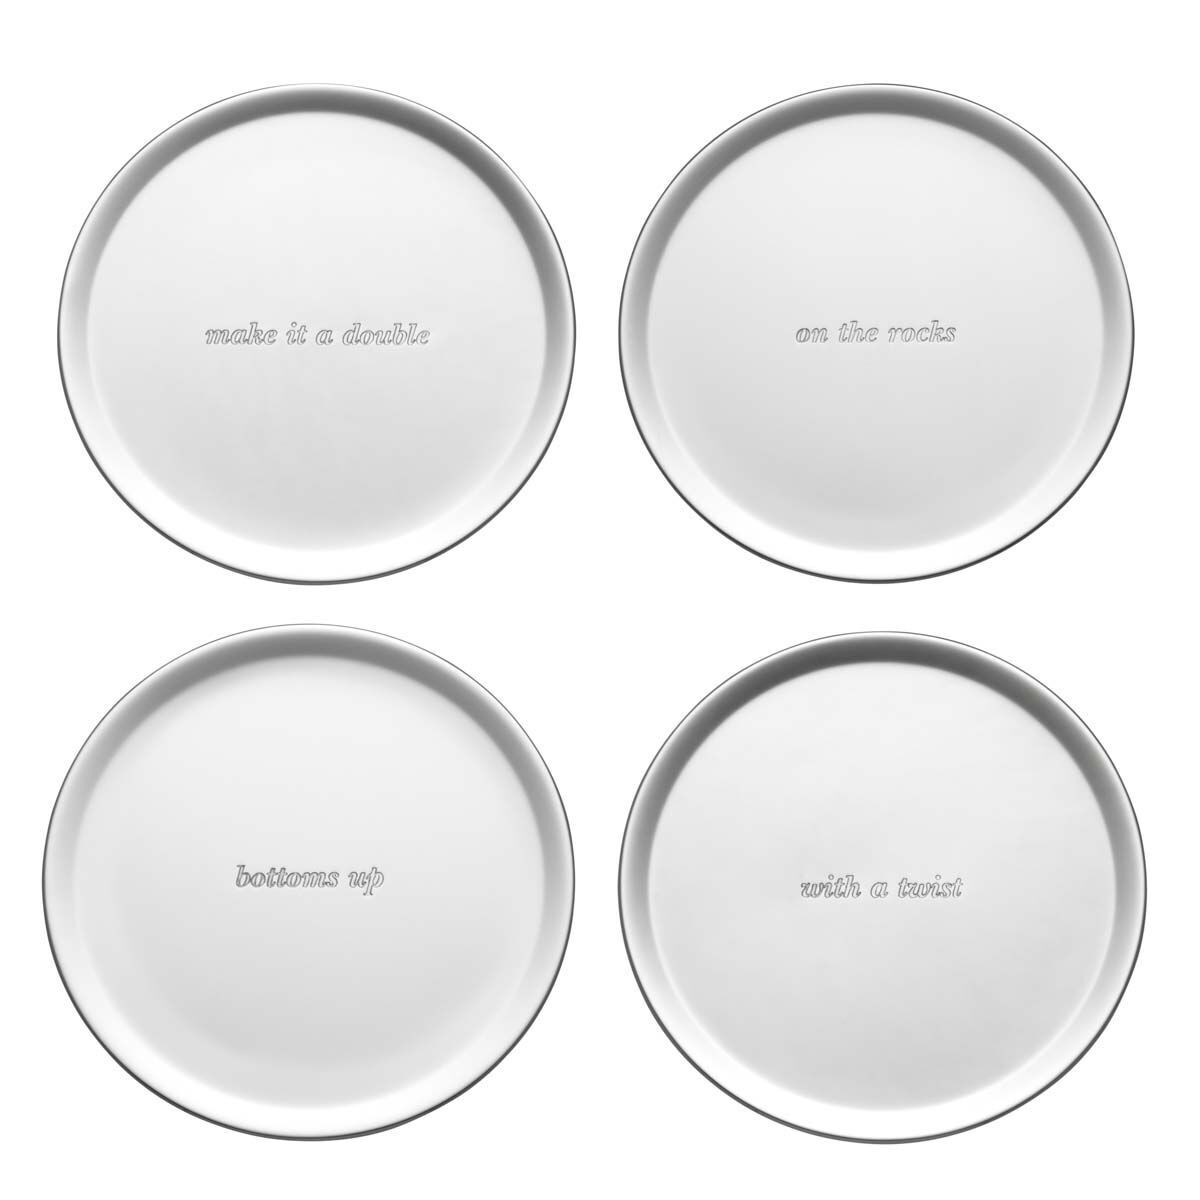 kate spade new york Silver Street Silver Plate 4 Piece Coaster Set